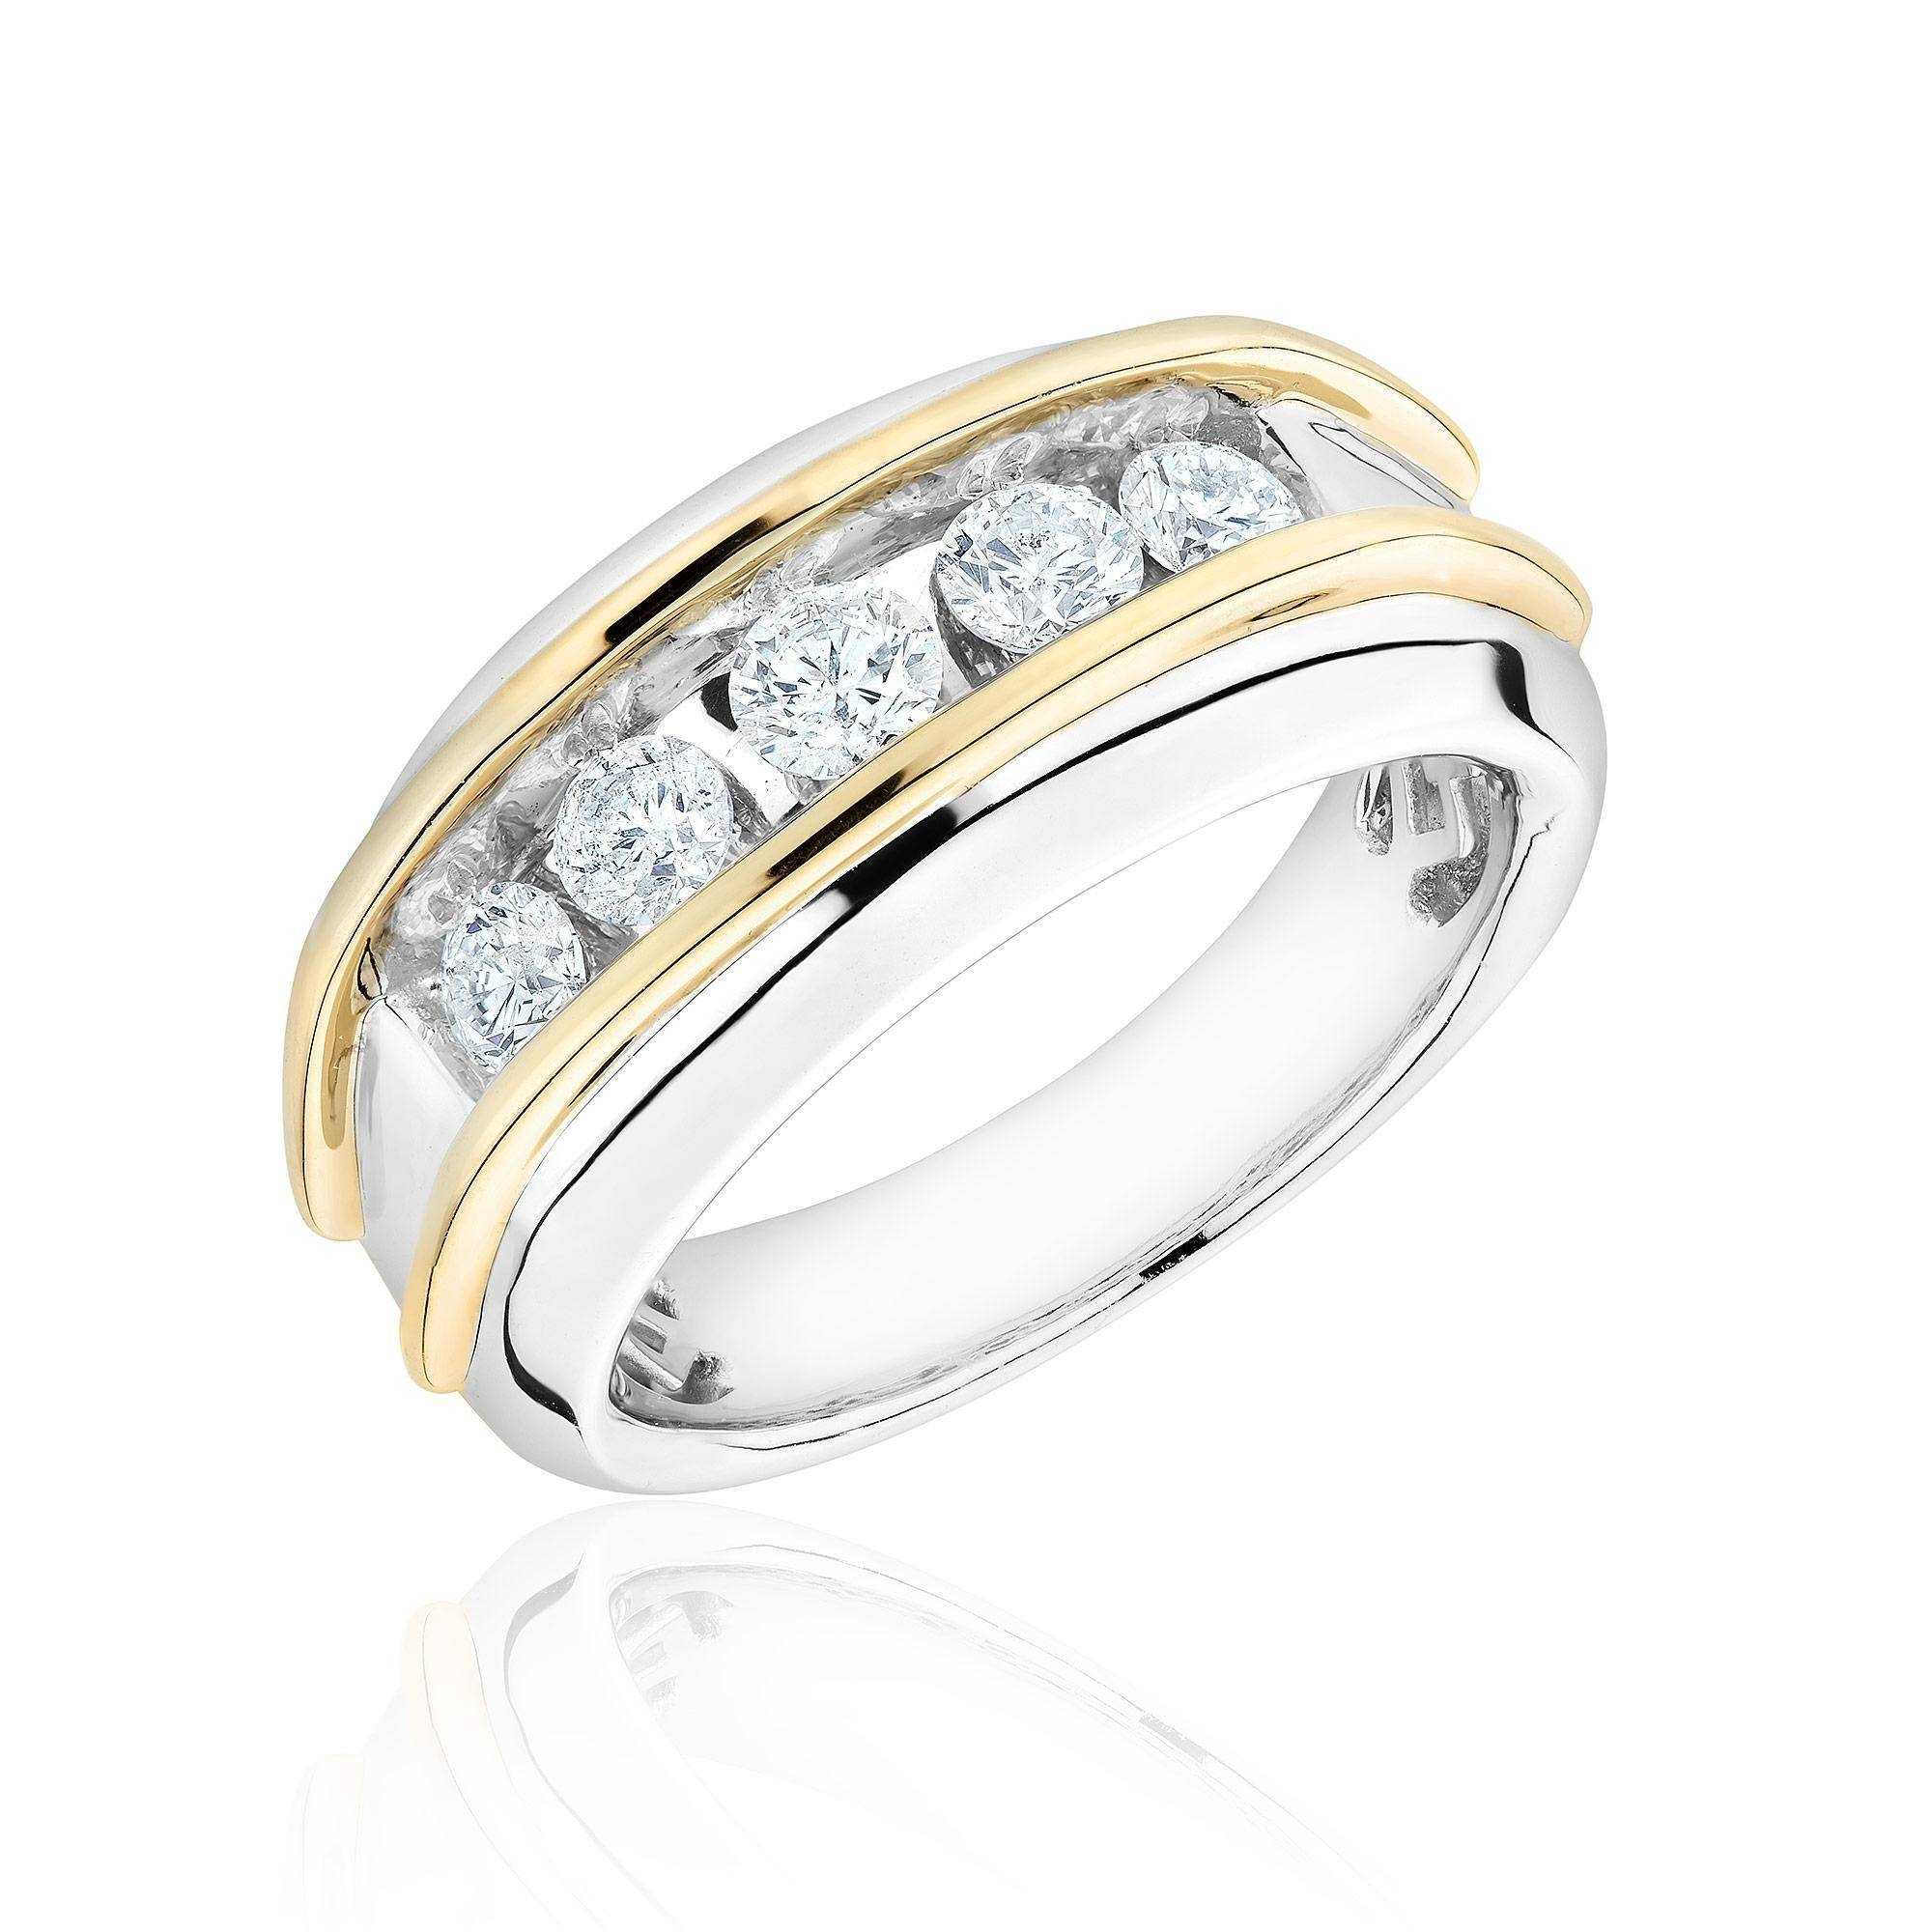 Wedding Bands Page 1 | Reeds Jewelers Throughout Jewelry Wedding Bands (View 12 of 15)